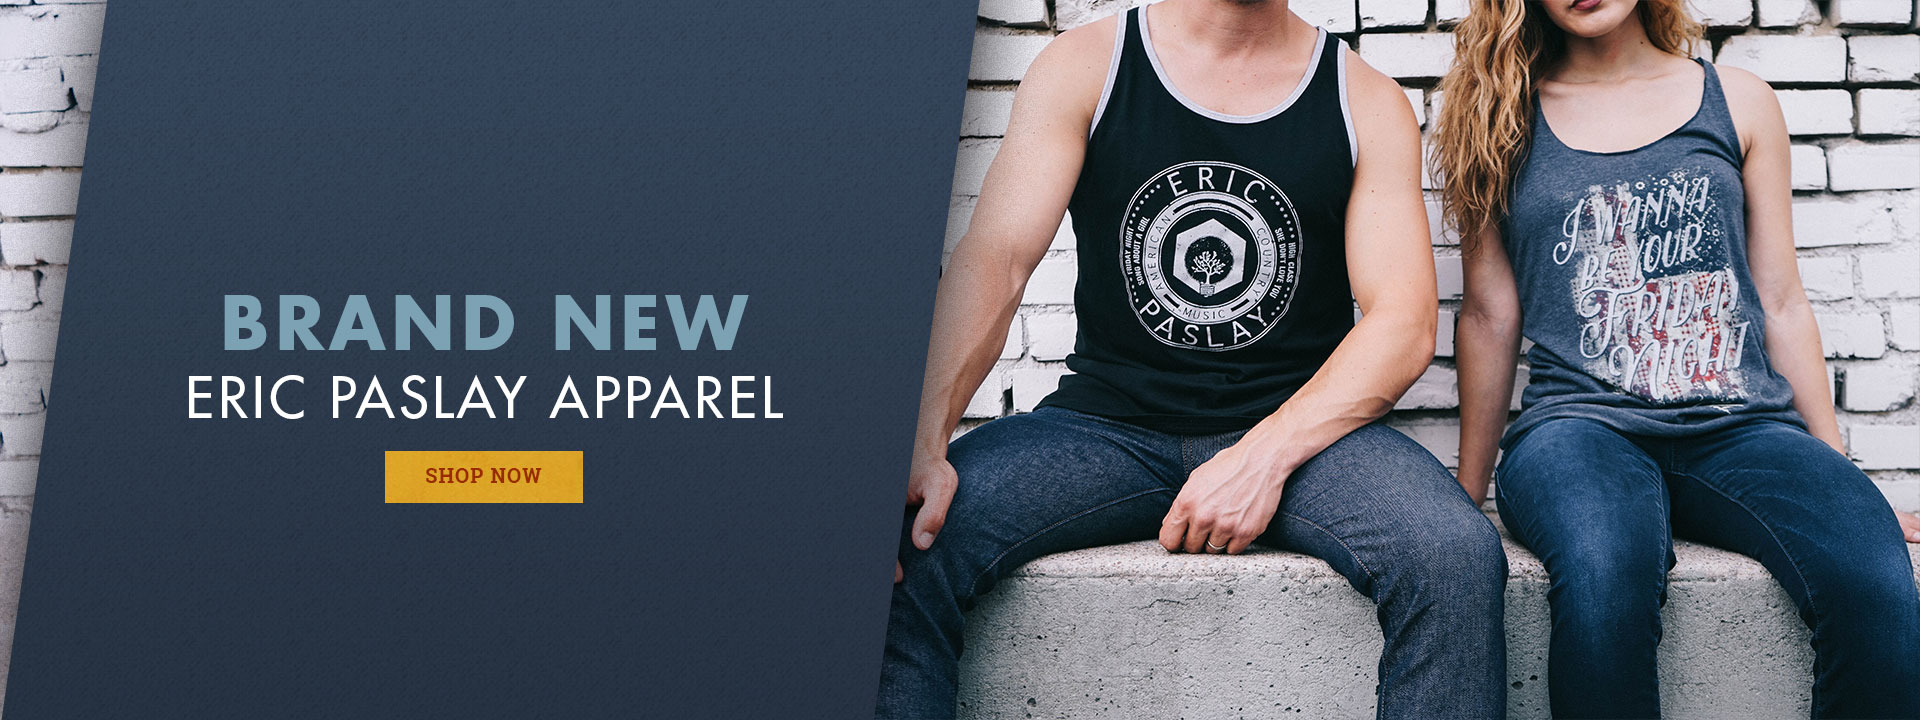 Shop New Apparel